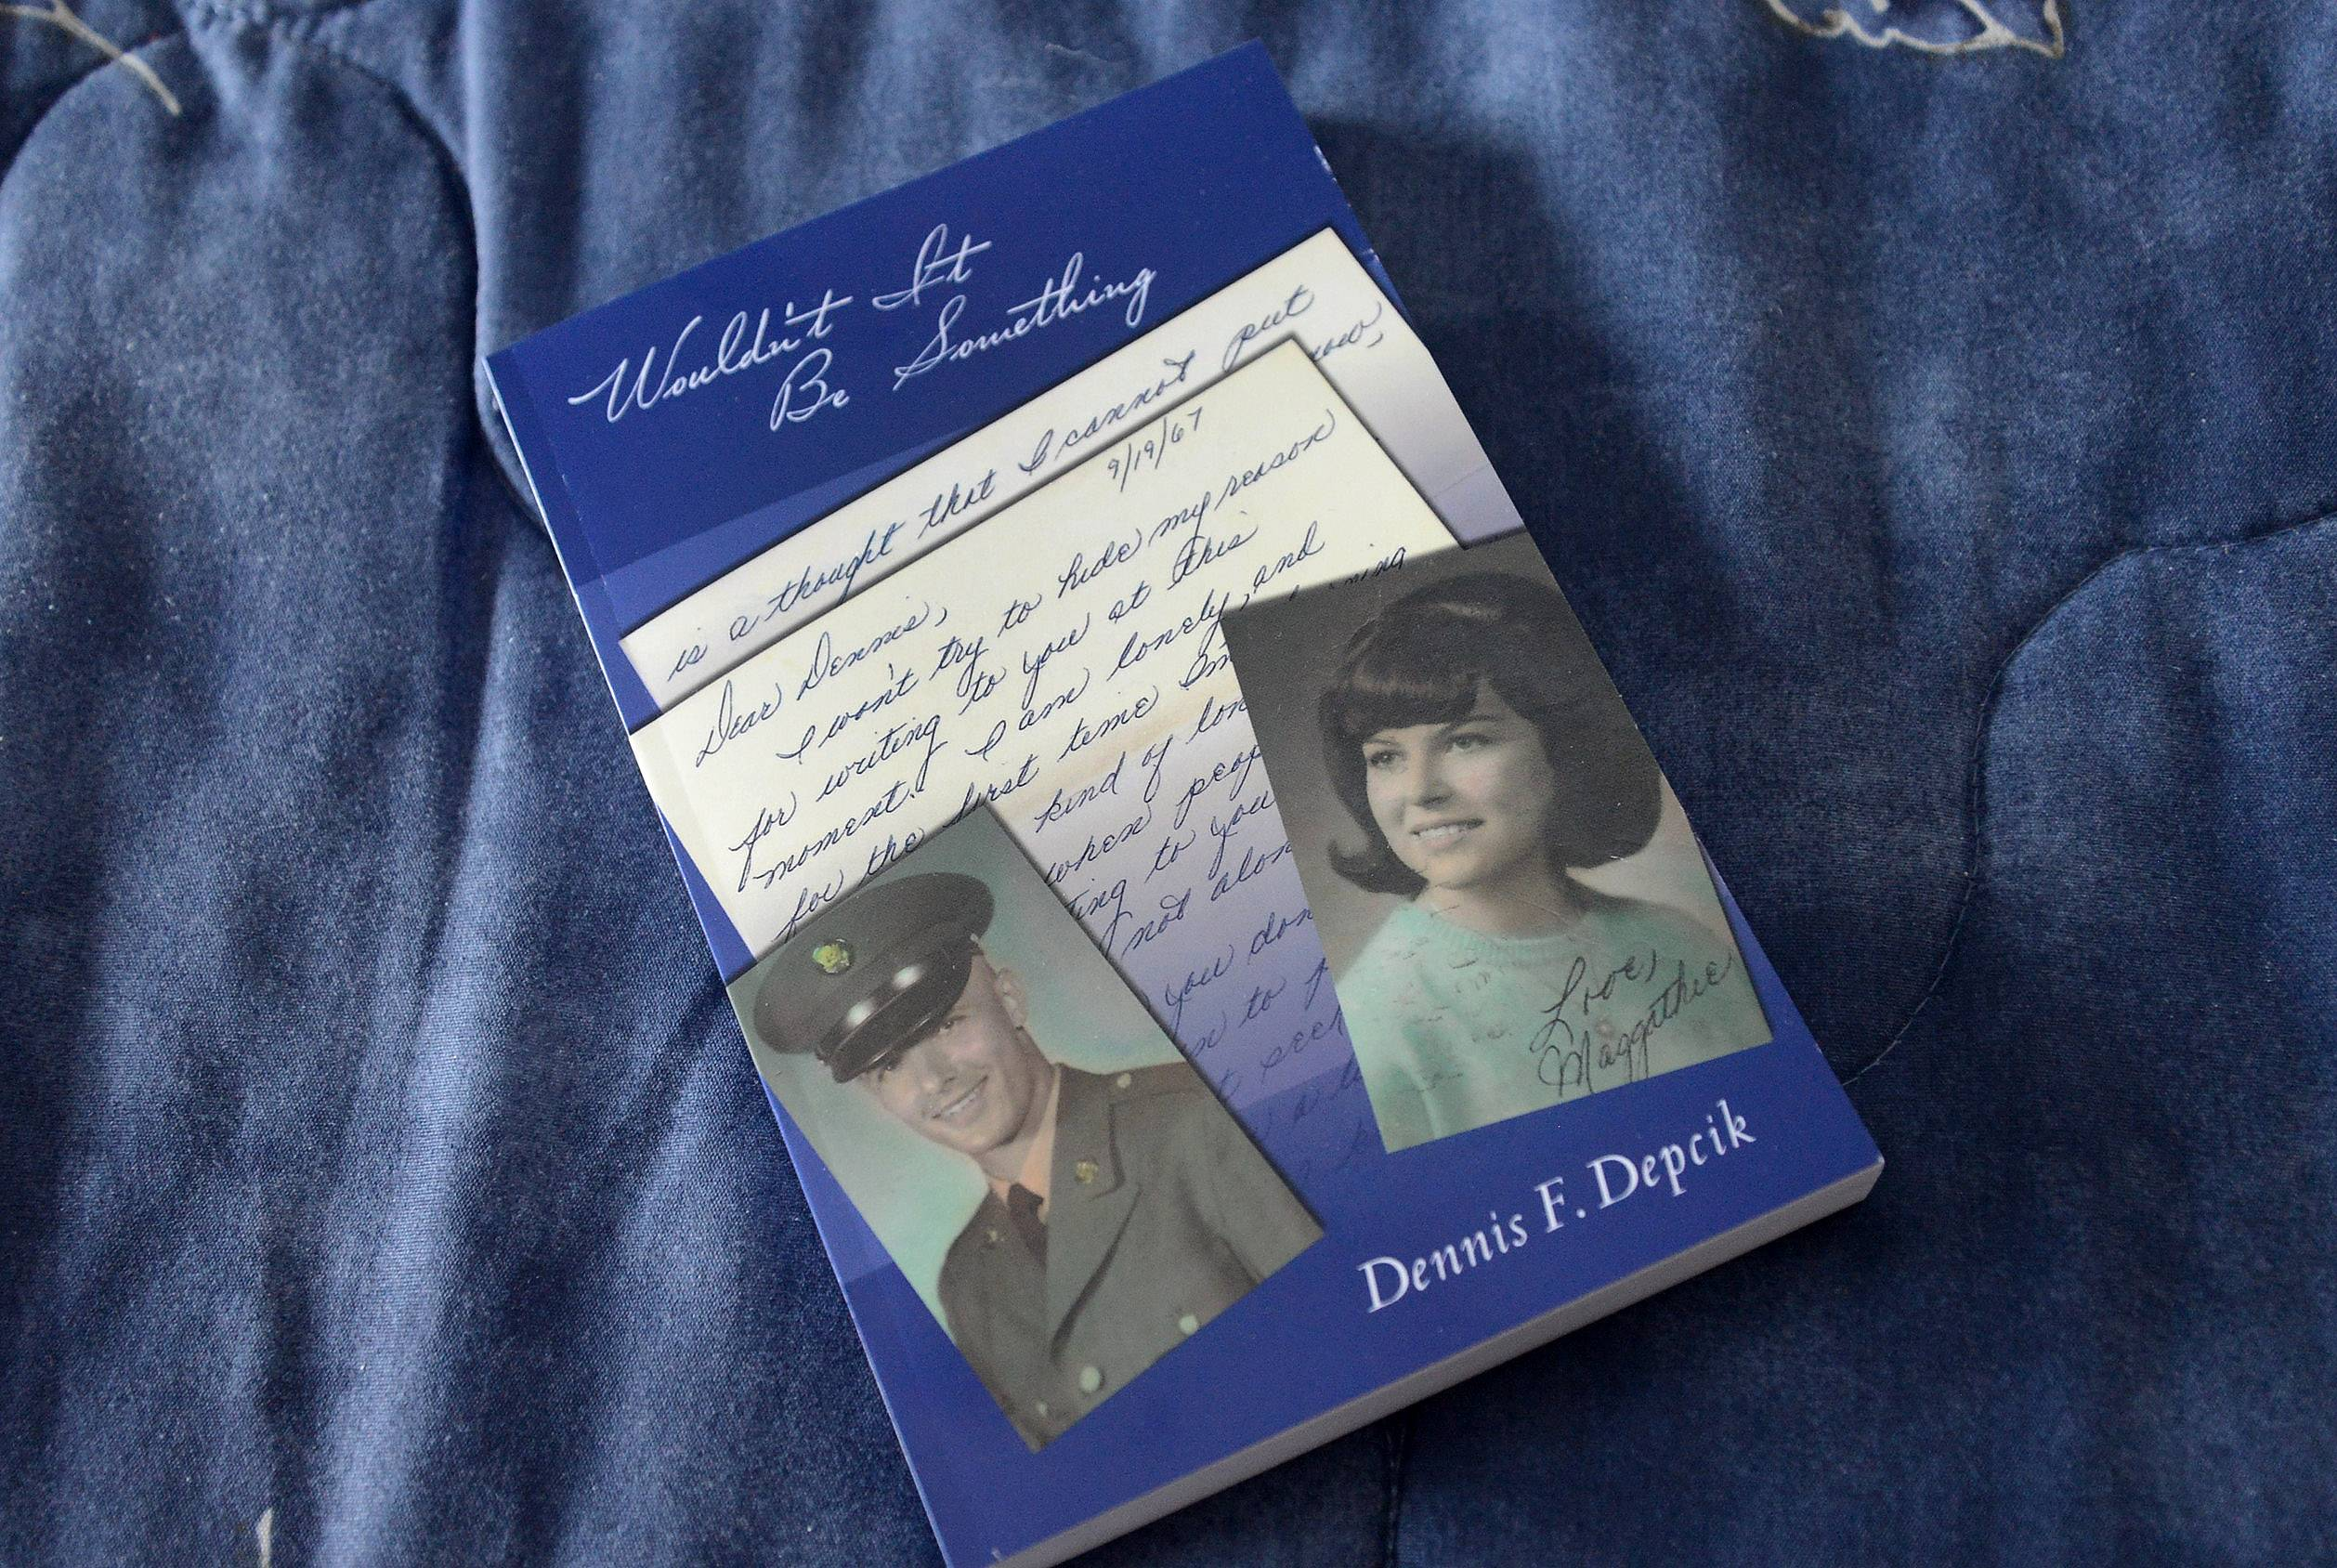 Coping with grief after the death of his wife, Dennis Depcik of Buffalo Grove wrote this book after finding a box of the couple's old letters.